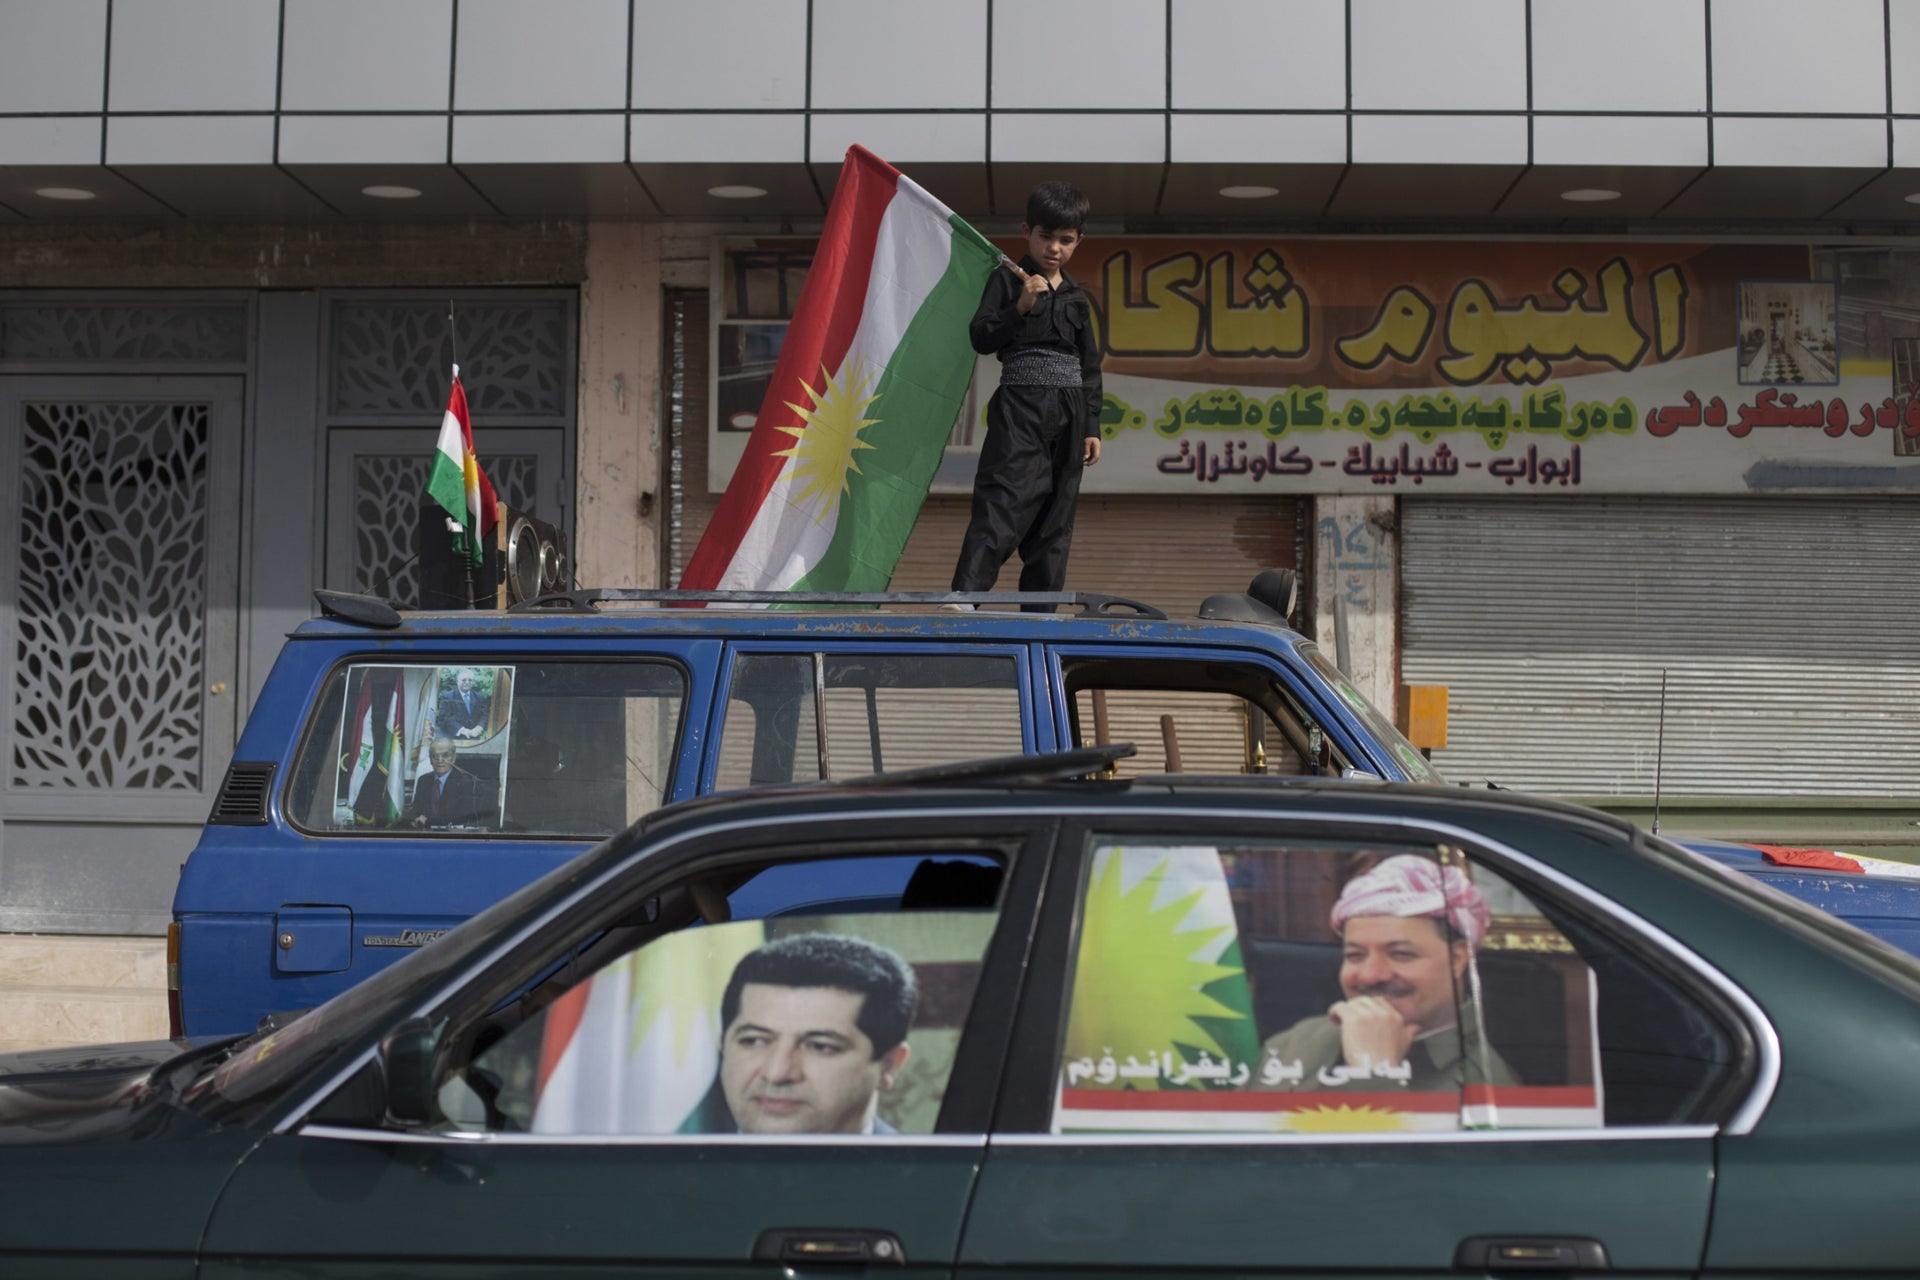 A boy carrying a Kurdish flag on top of a vehicle as a car with the faces of Kurdish President Masoud Barzani and his son Masrour on the windows passes by in the disputed city of Kirkuk, September 25, 2017.